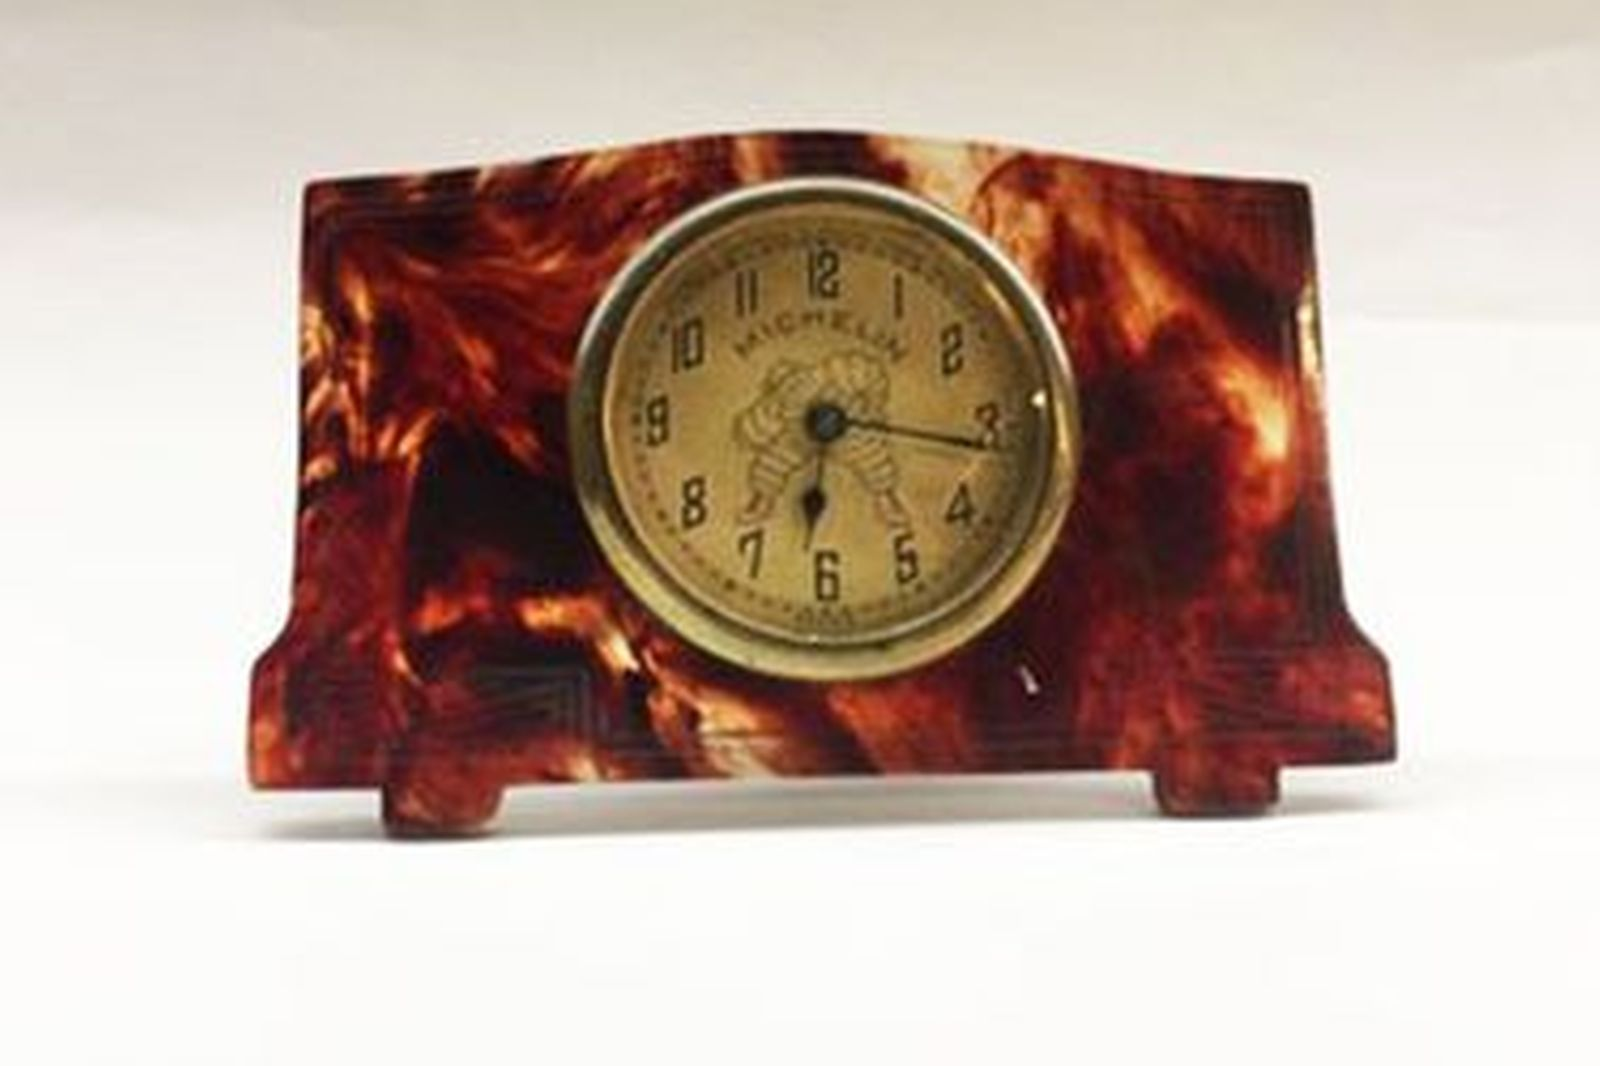 1920s Michelin Tortoise Shell Travel Clock (80mm wide)